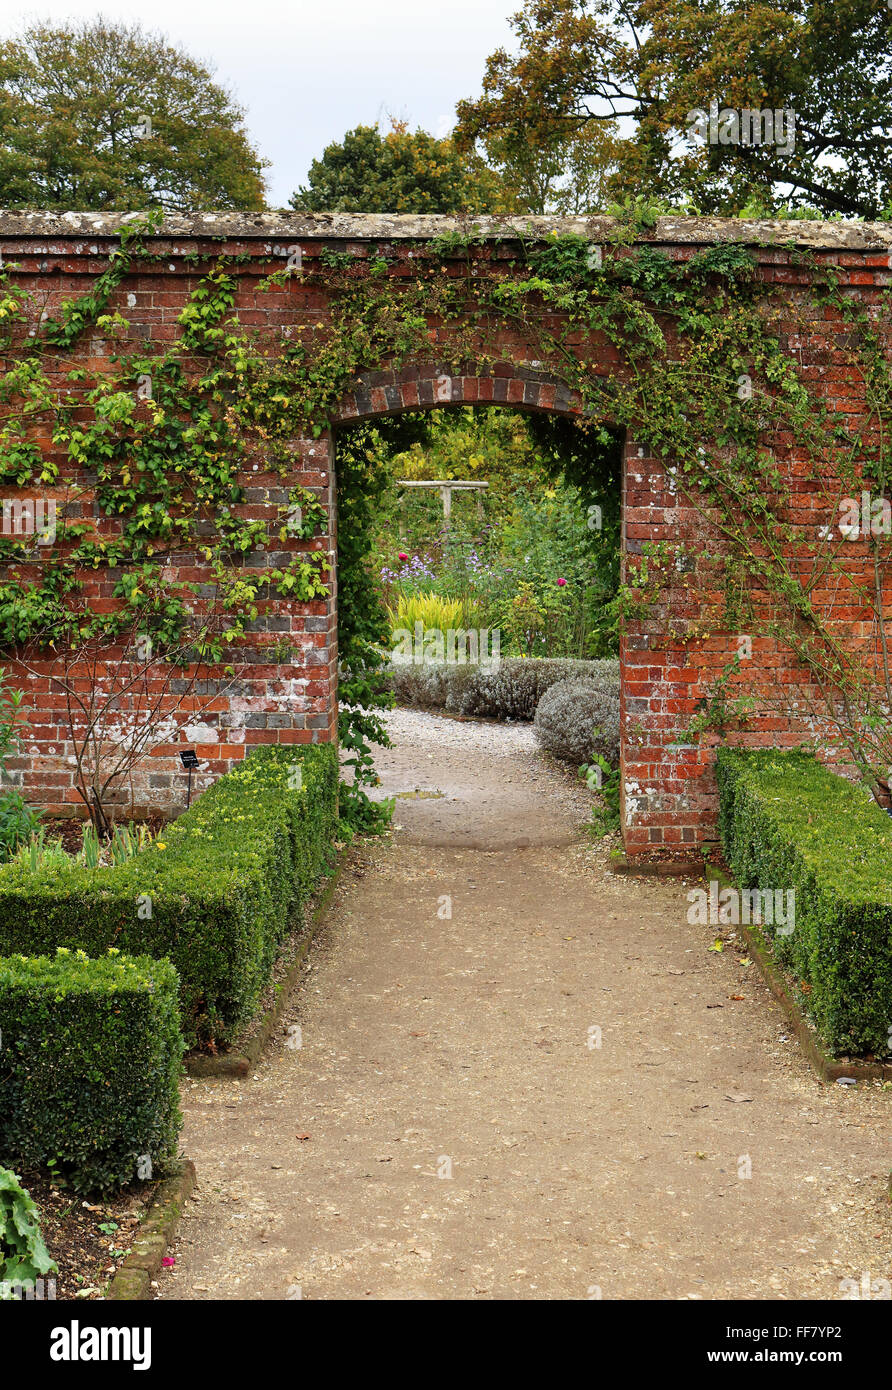 Archway Into An English Walled Garden With Box Hedging   Stock Image